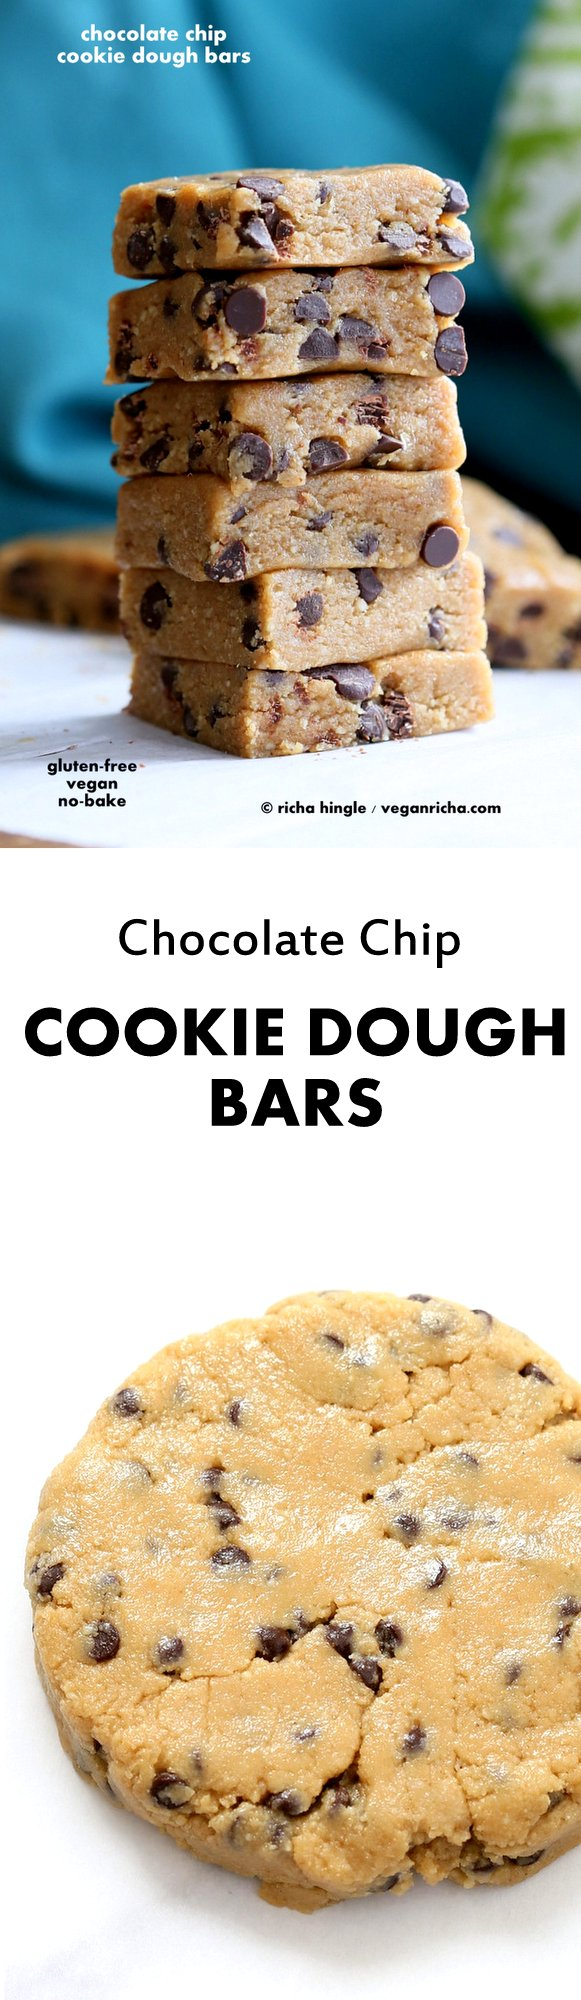 Easy Vegan Chocolate Chip Cookie Dough Bars. Gluten-free | VeganRicha.com